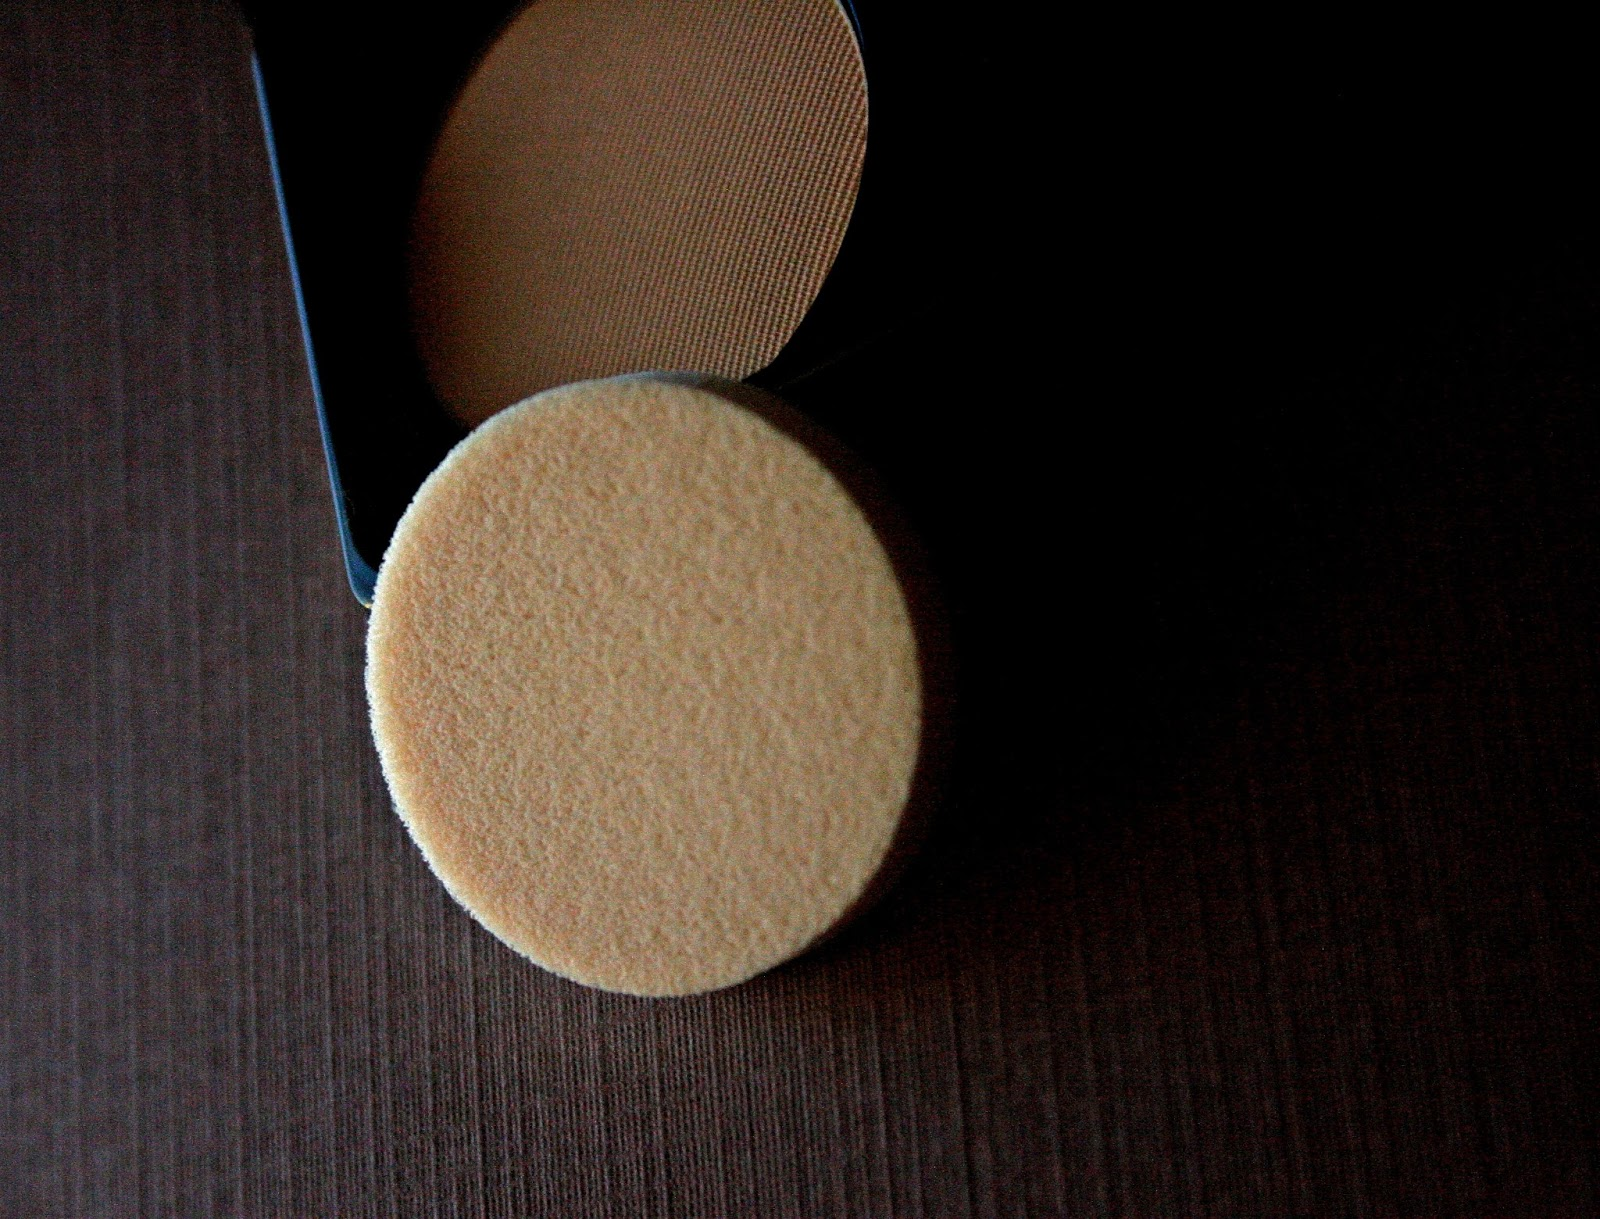 Make Up For Ever Pro Finish Multi-Use Powder Foundation #128 Sponge Applicator